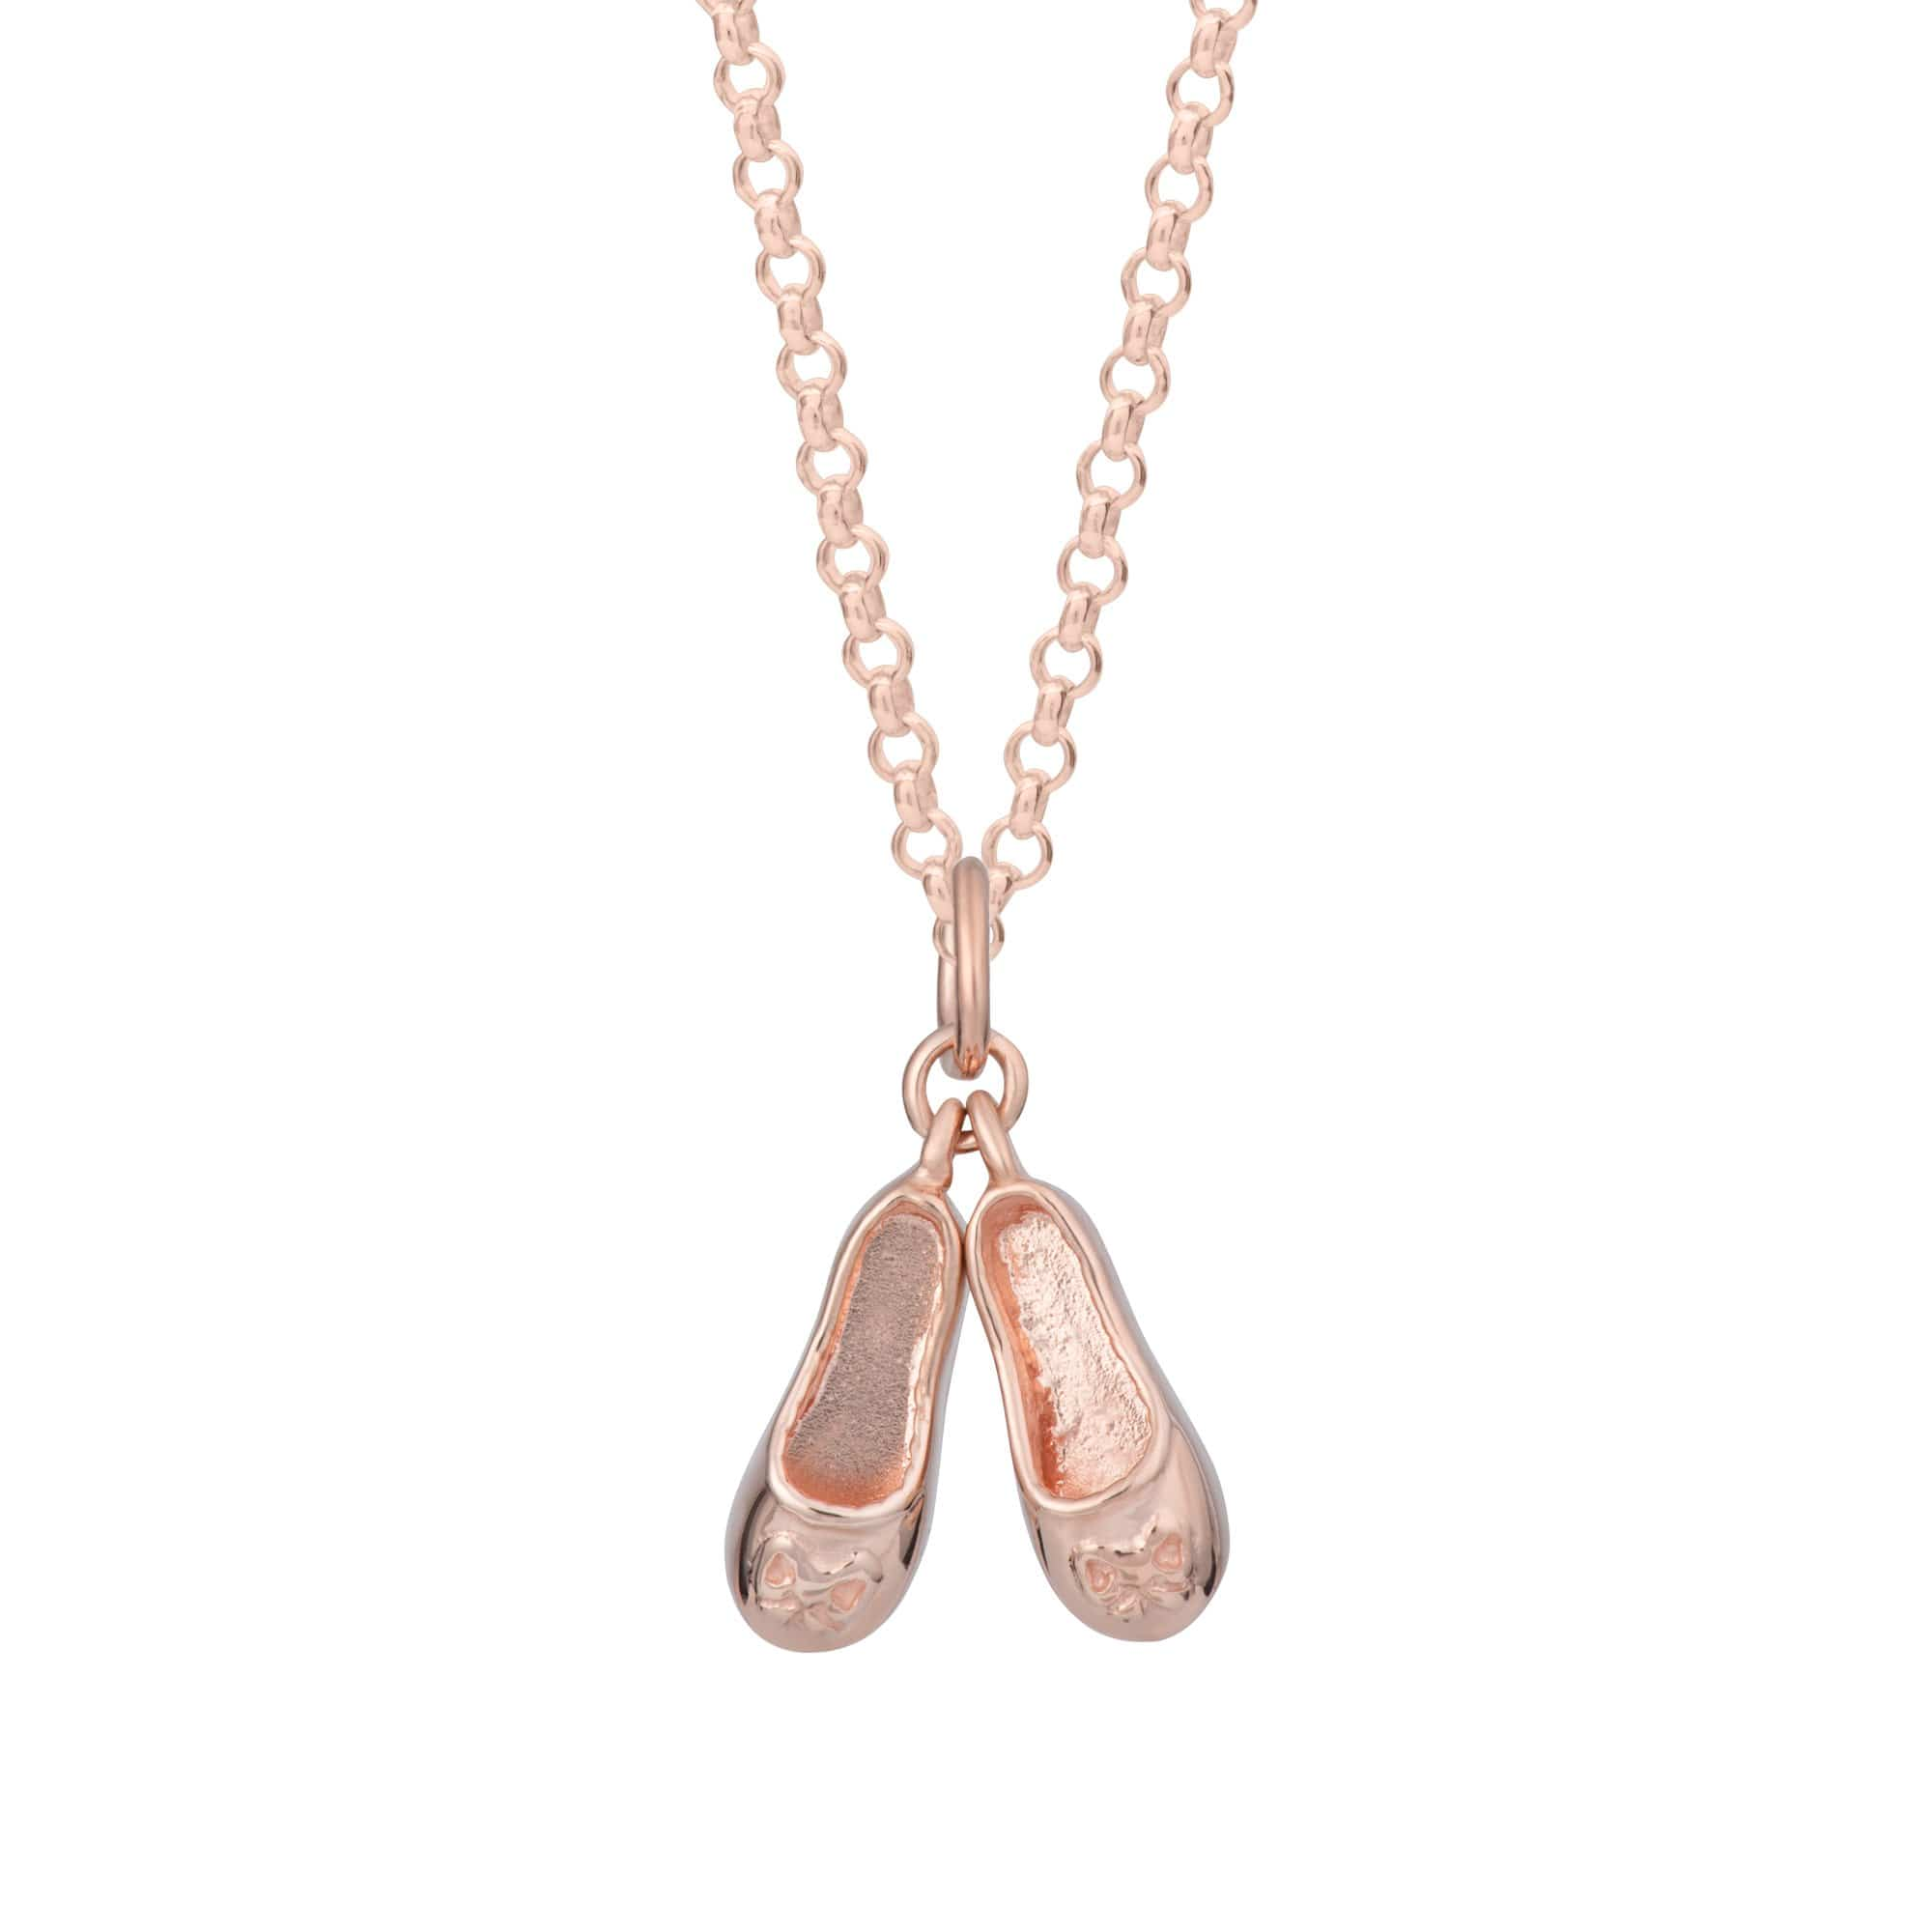 Children's Personalised Rose Gold Plated Ballet Shoes Necklace - Lily Charmed